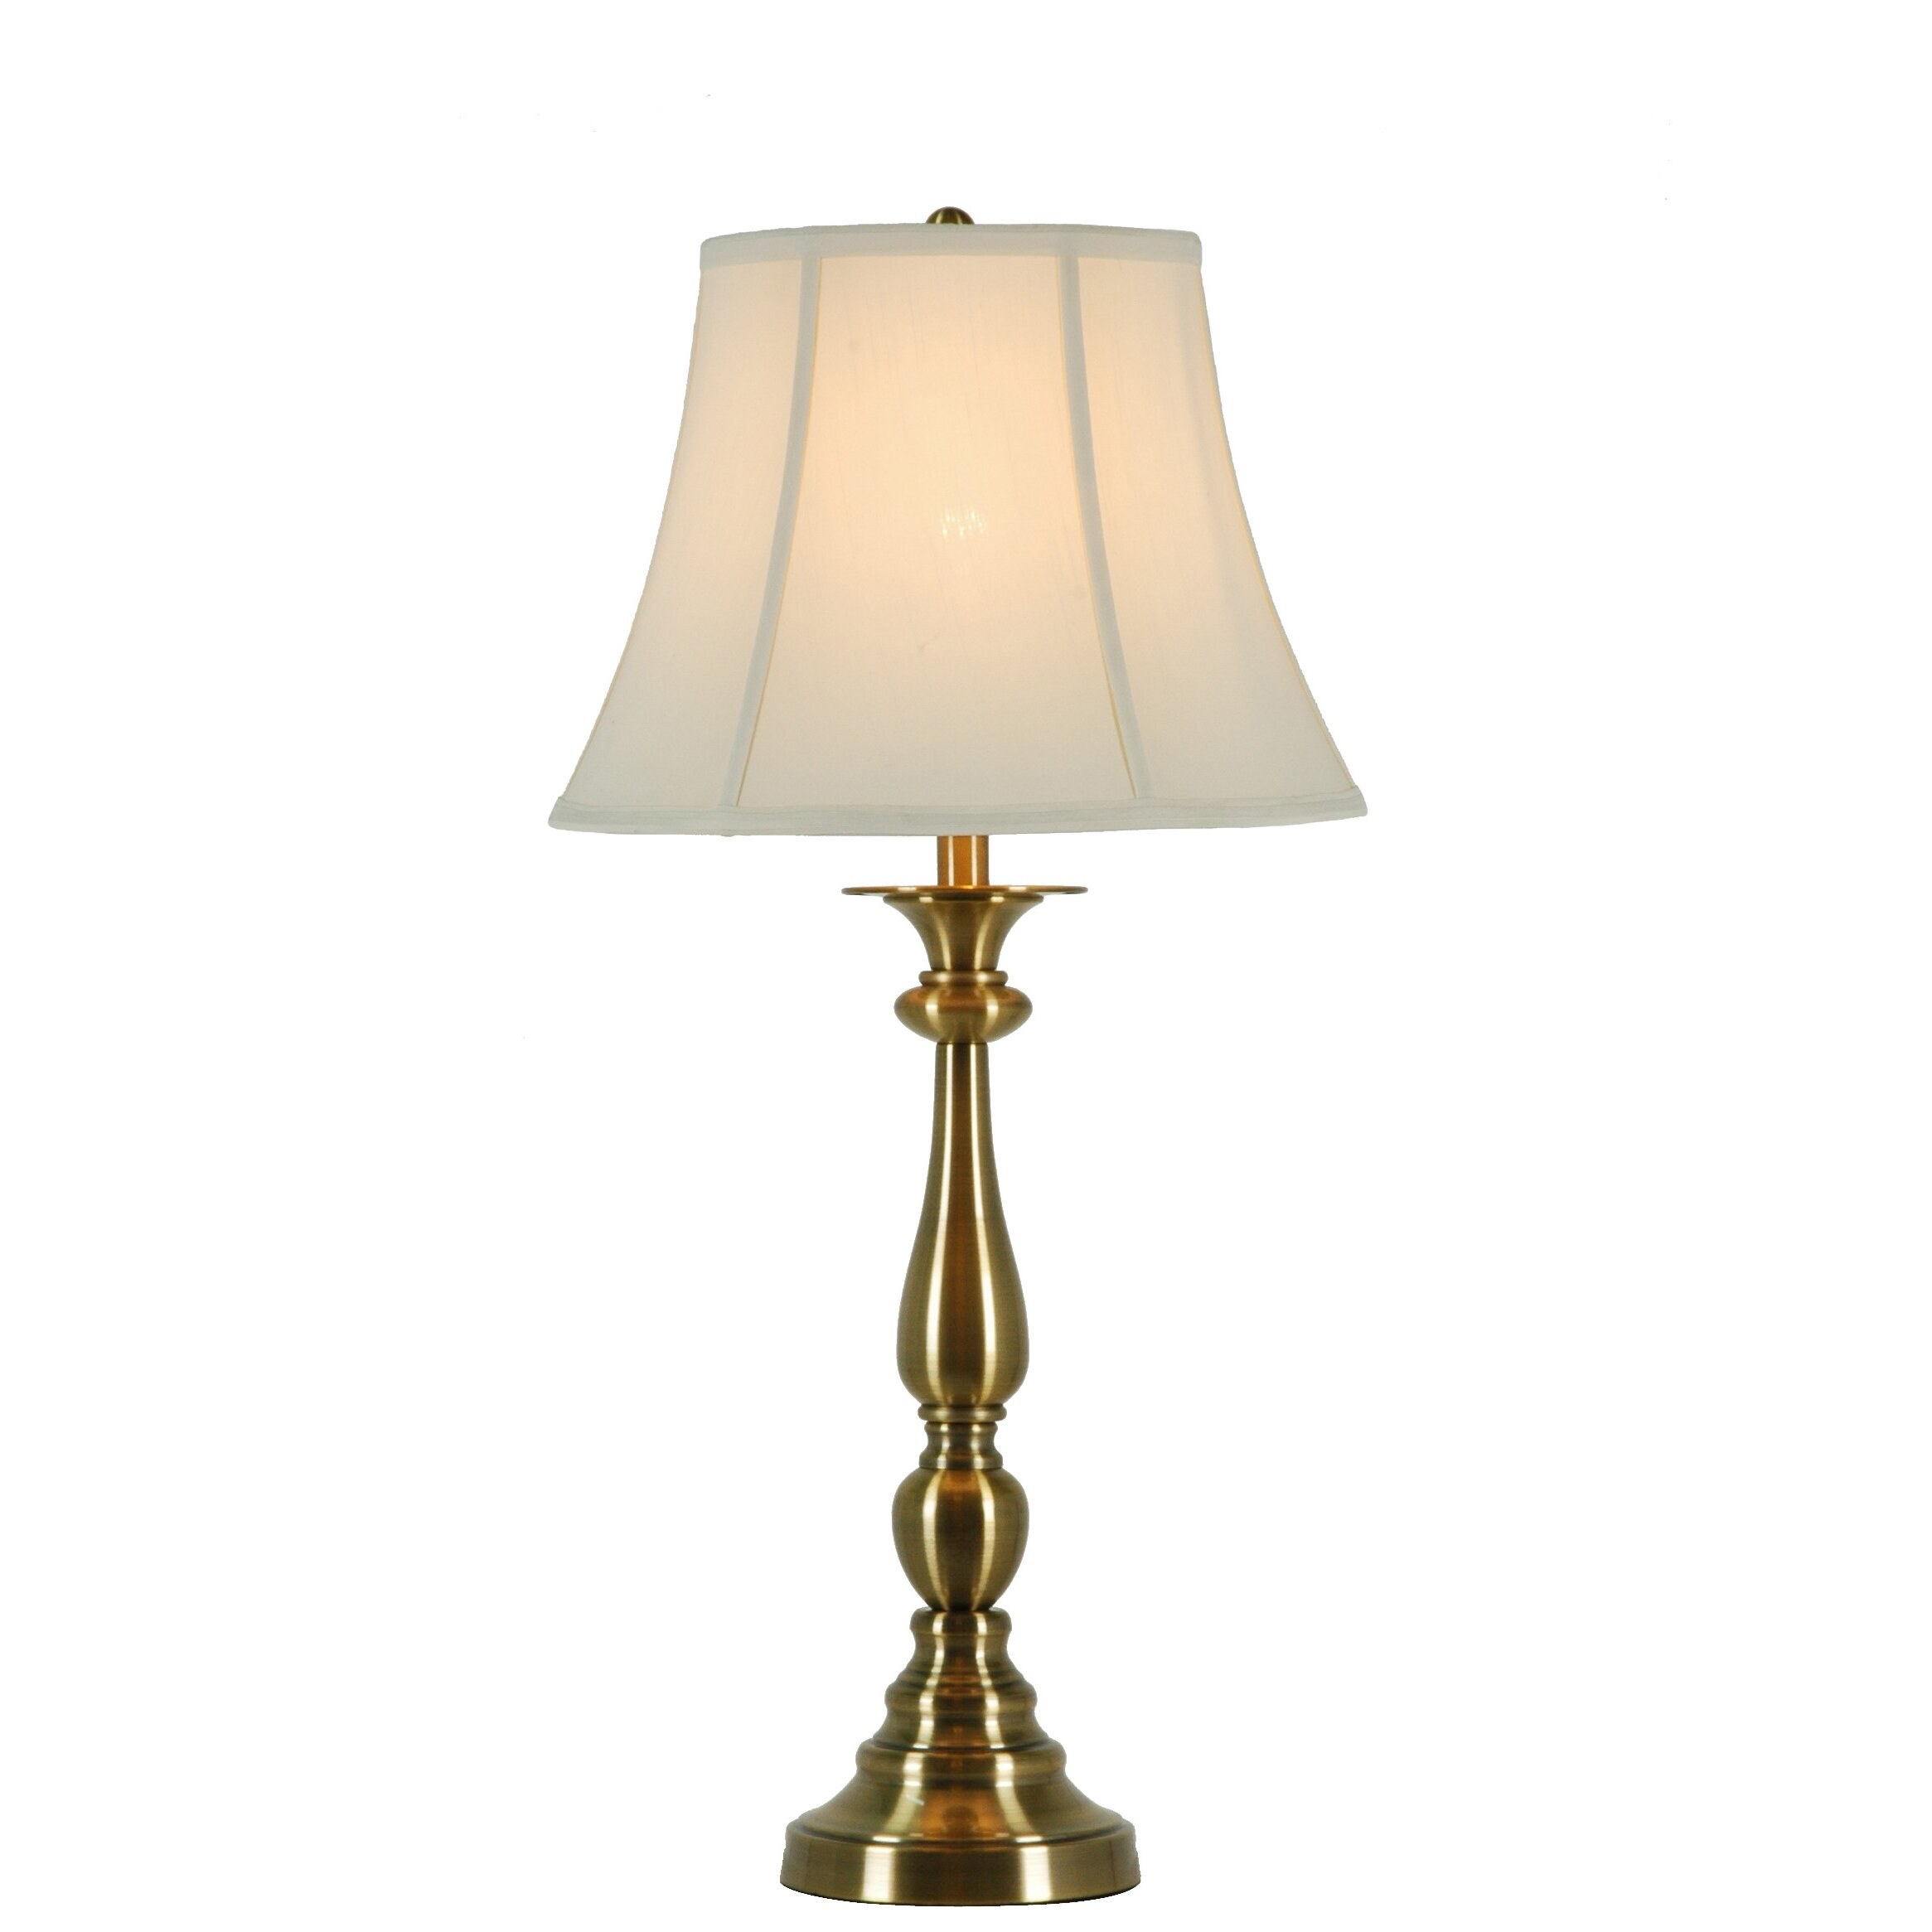 lighting lamps table lamps fangio sku fg1342. Black Bedroom Furniture Sets. Home Design Ideas